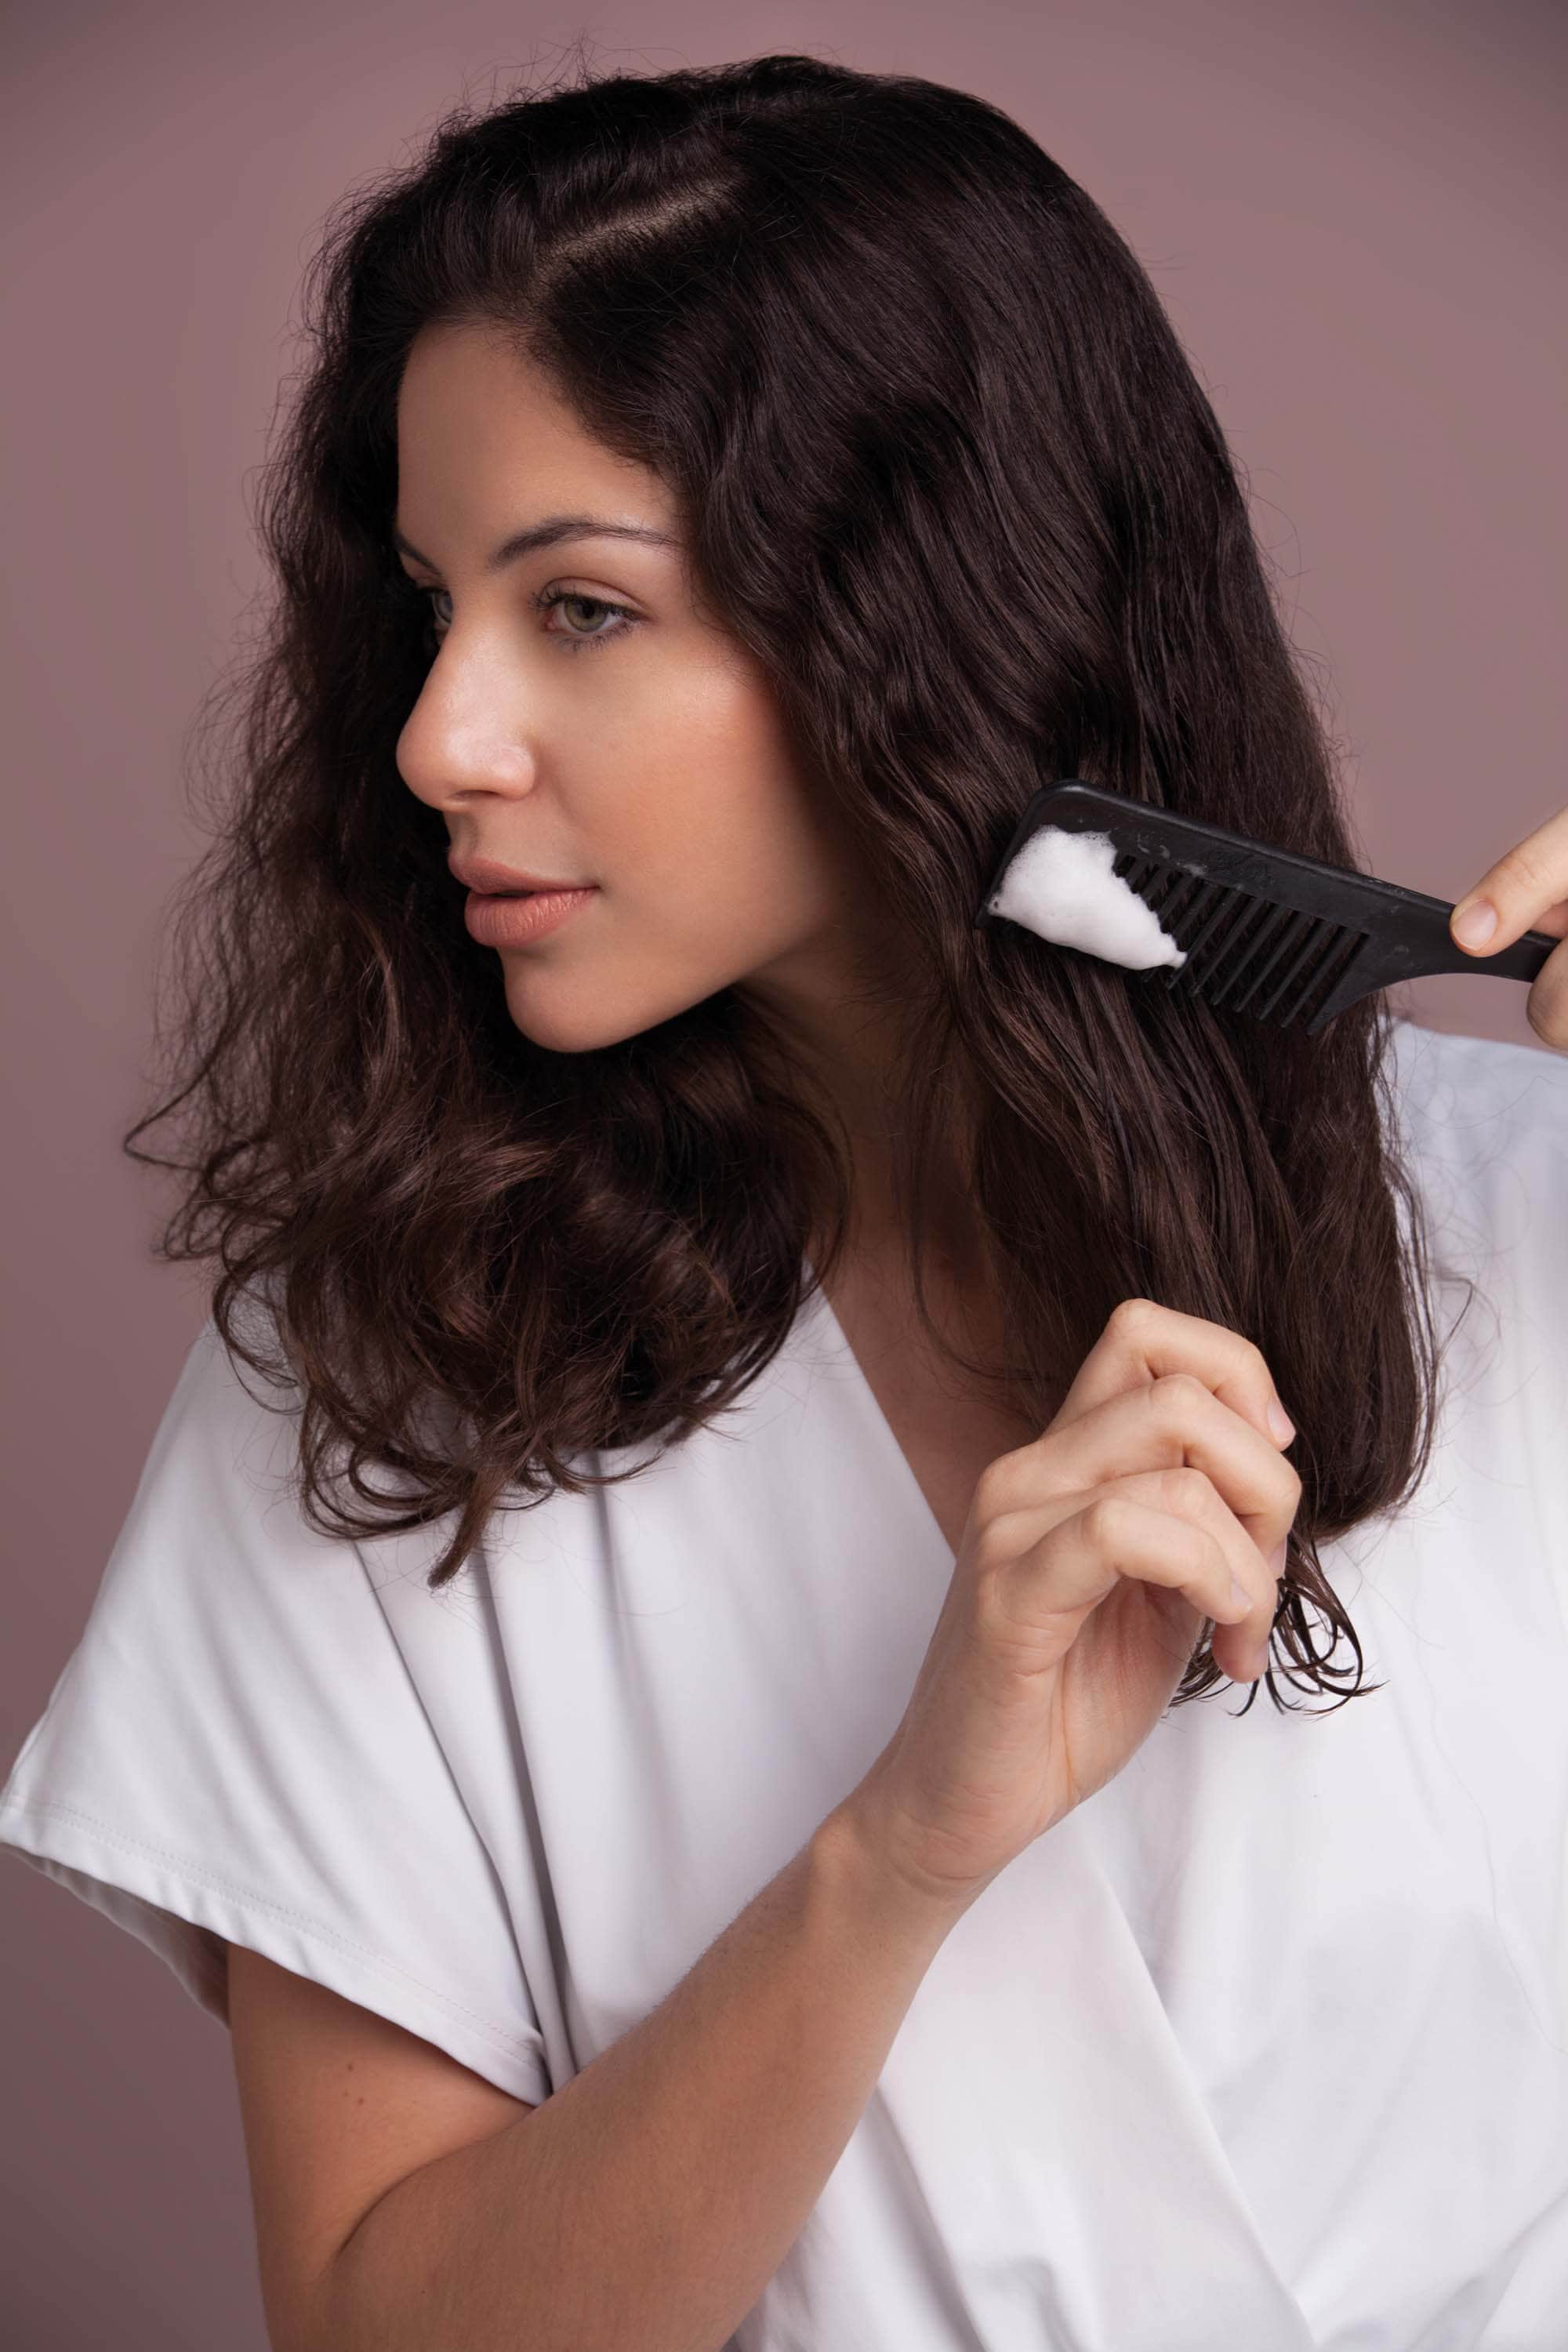 hair mousse can be applied onto a comb